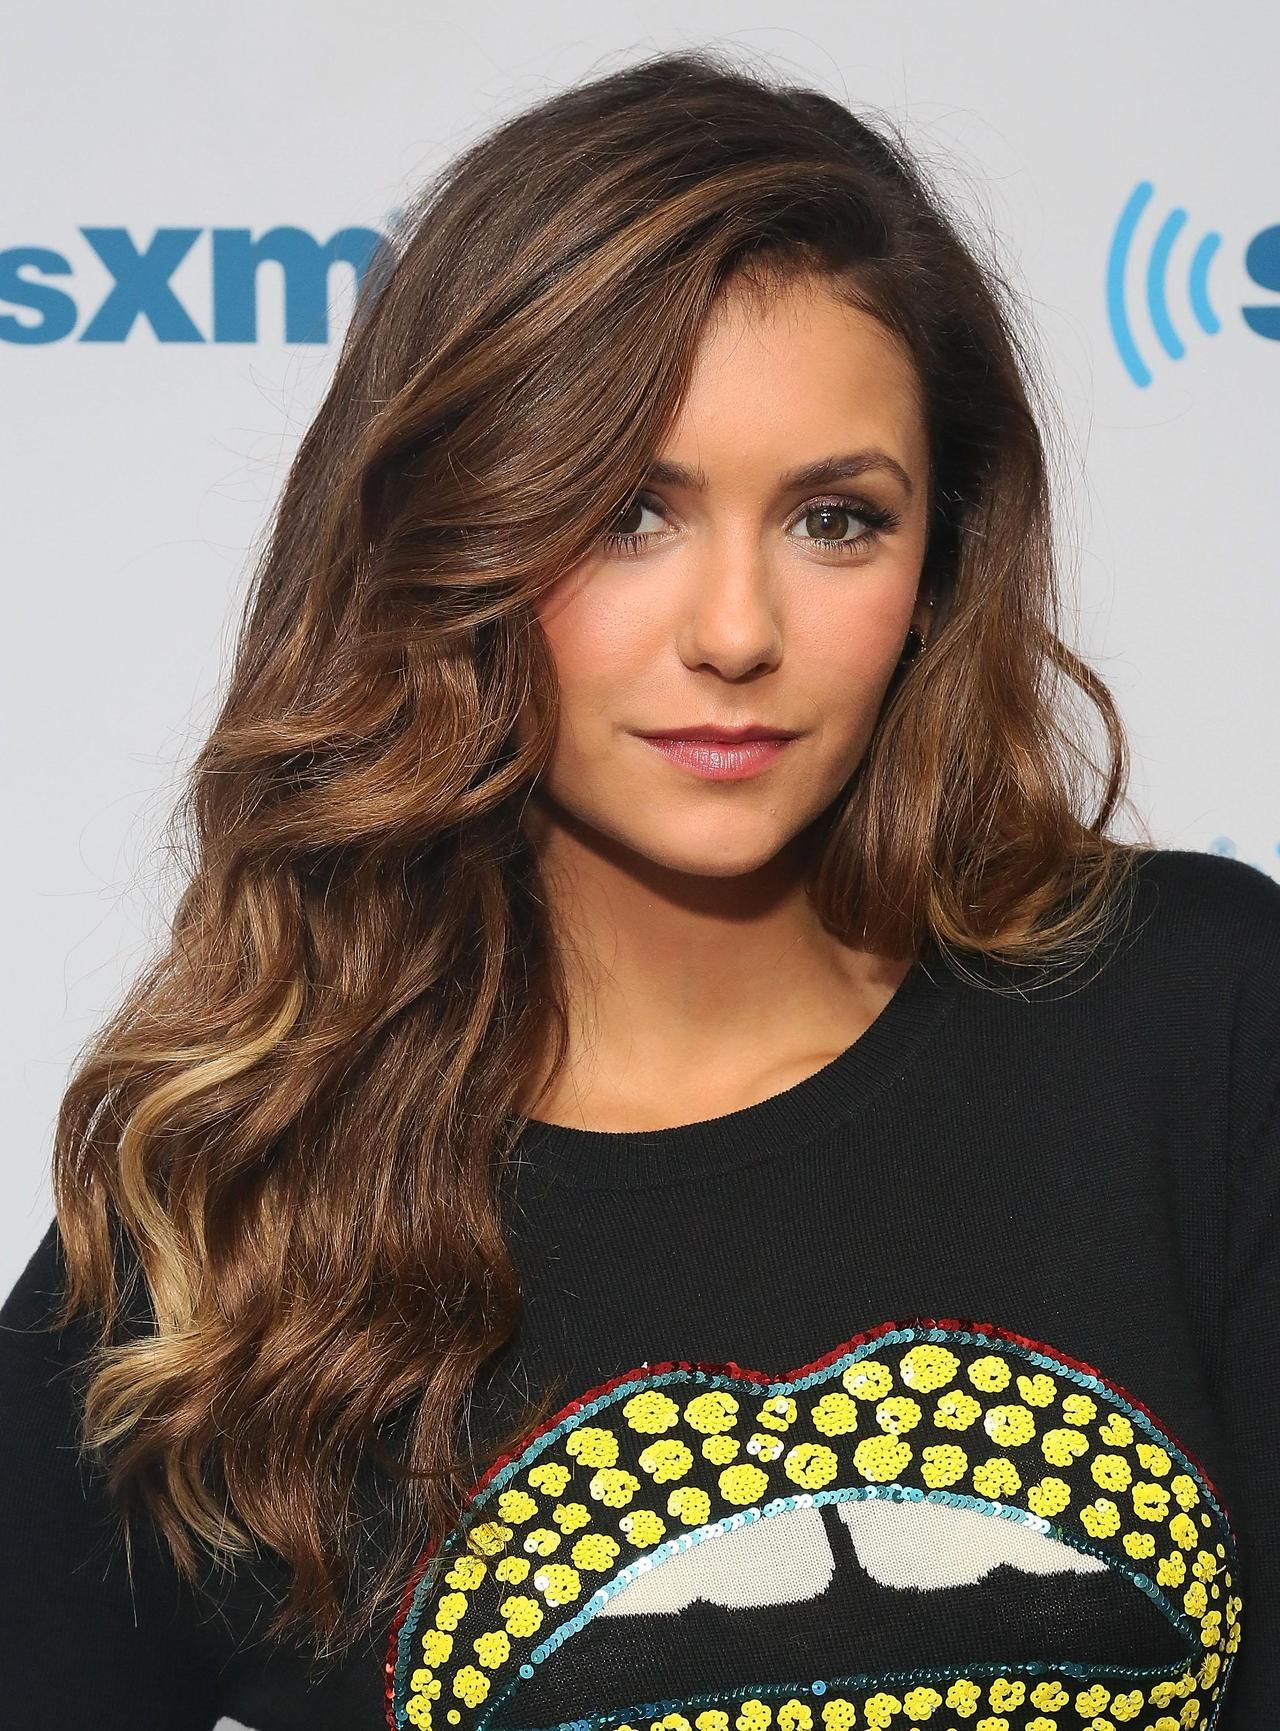 nina dobrev hair color hair pinterest haare und. Black Bedroom Furniture Sets. Home Design Ideas